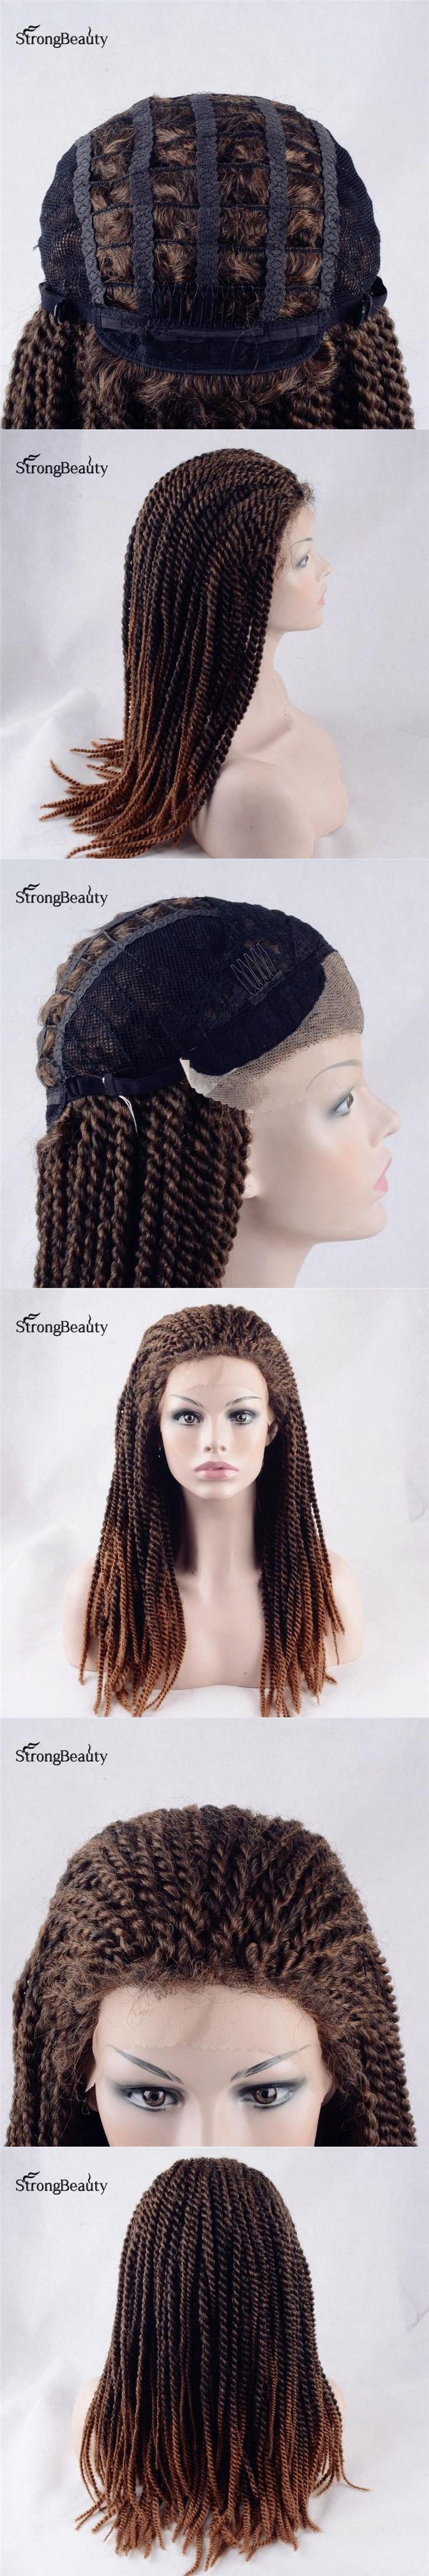 Strongbeauty Afro Twist Braided Wig Synthetic Heat Resistant Ombre Brown mix Auburn Two Tone Lace Front Wigs for Black Women